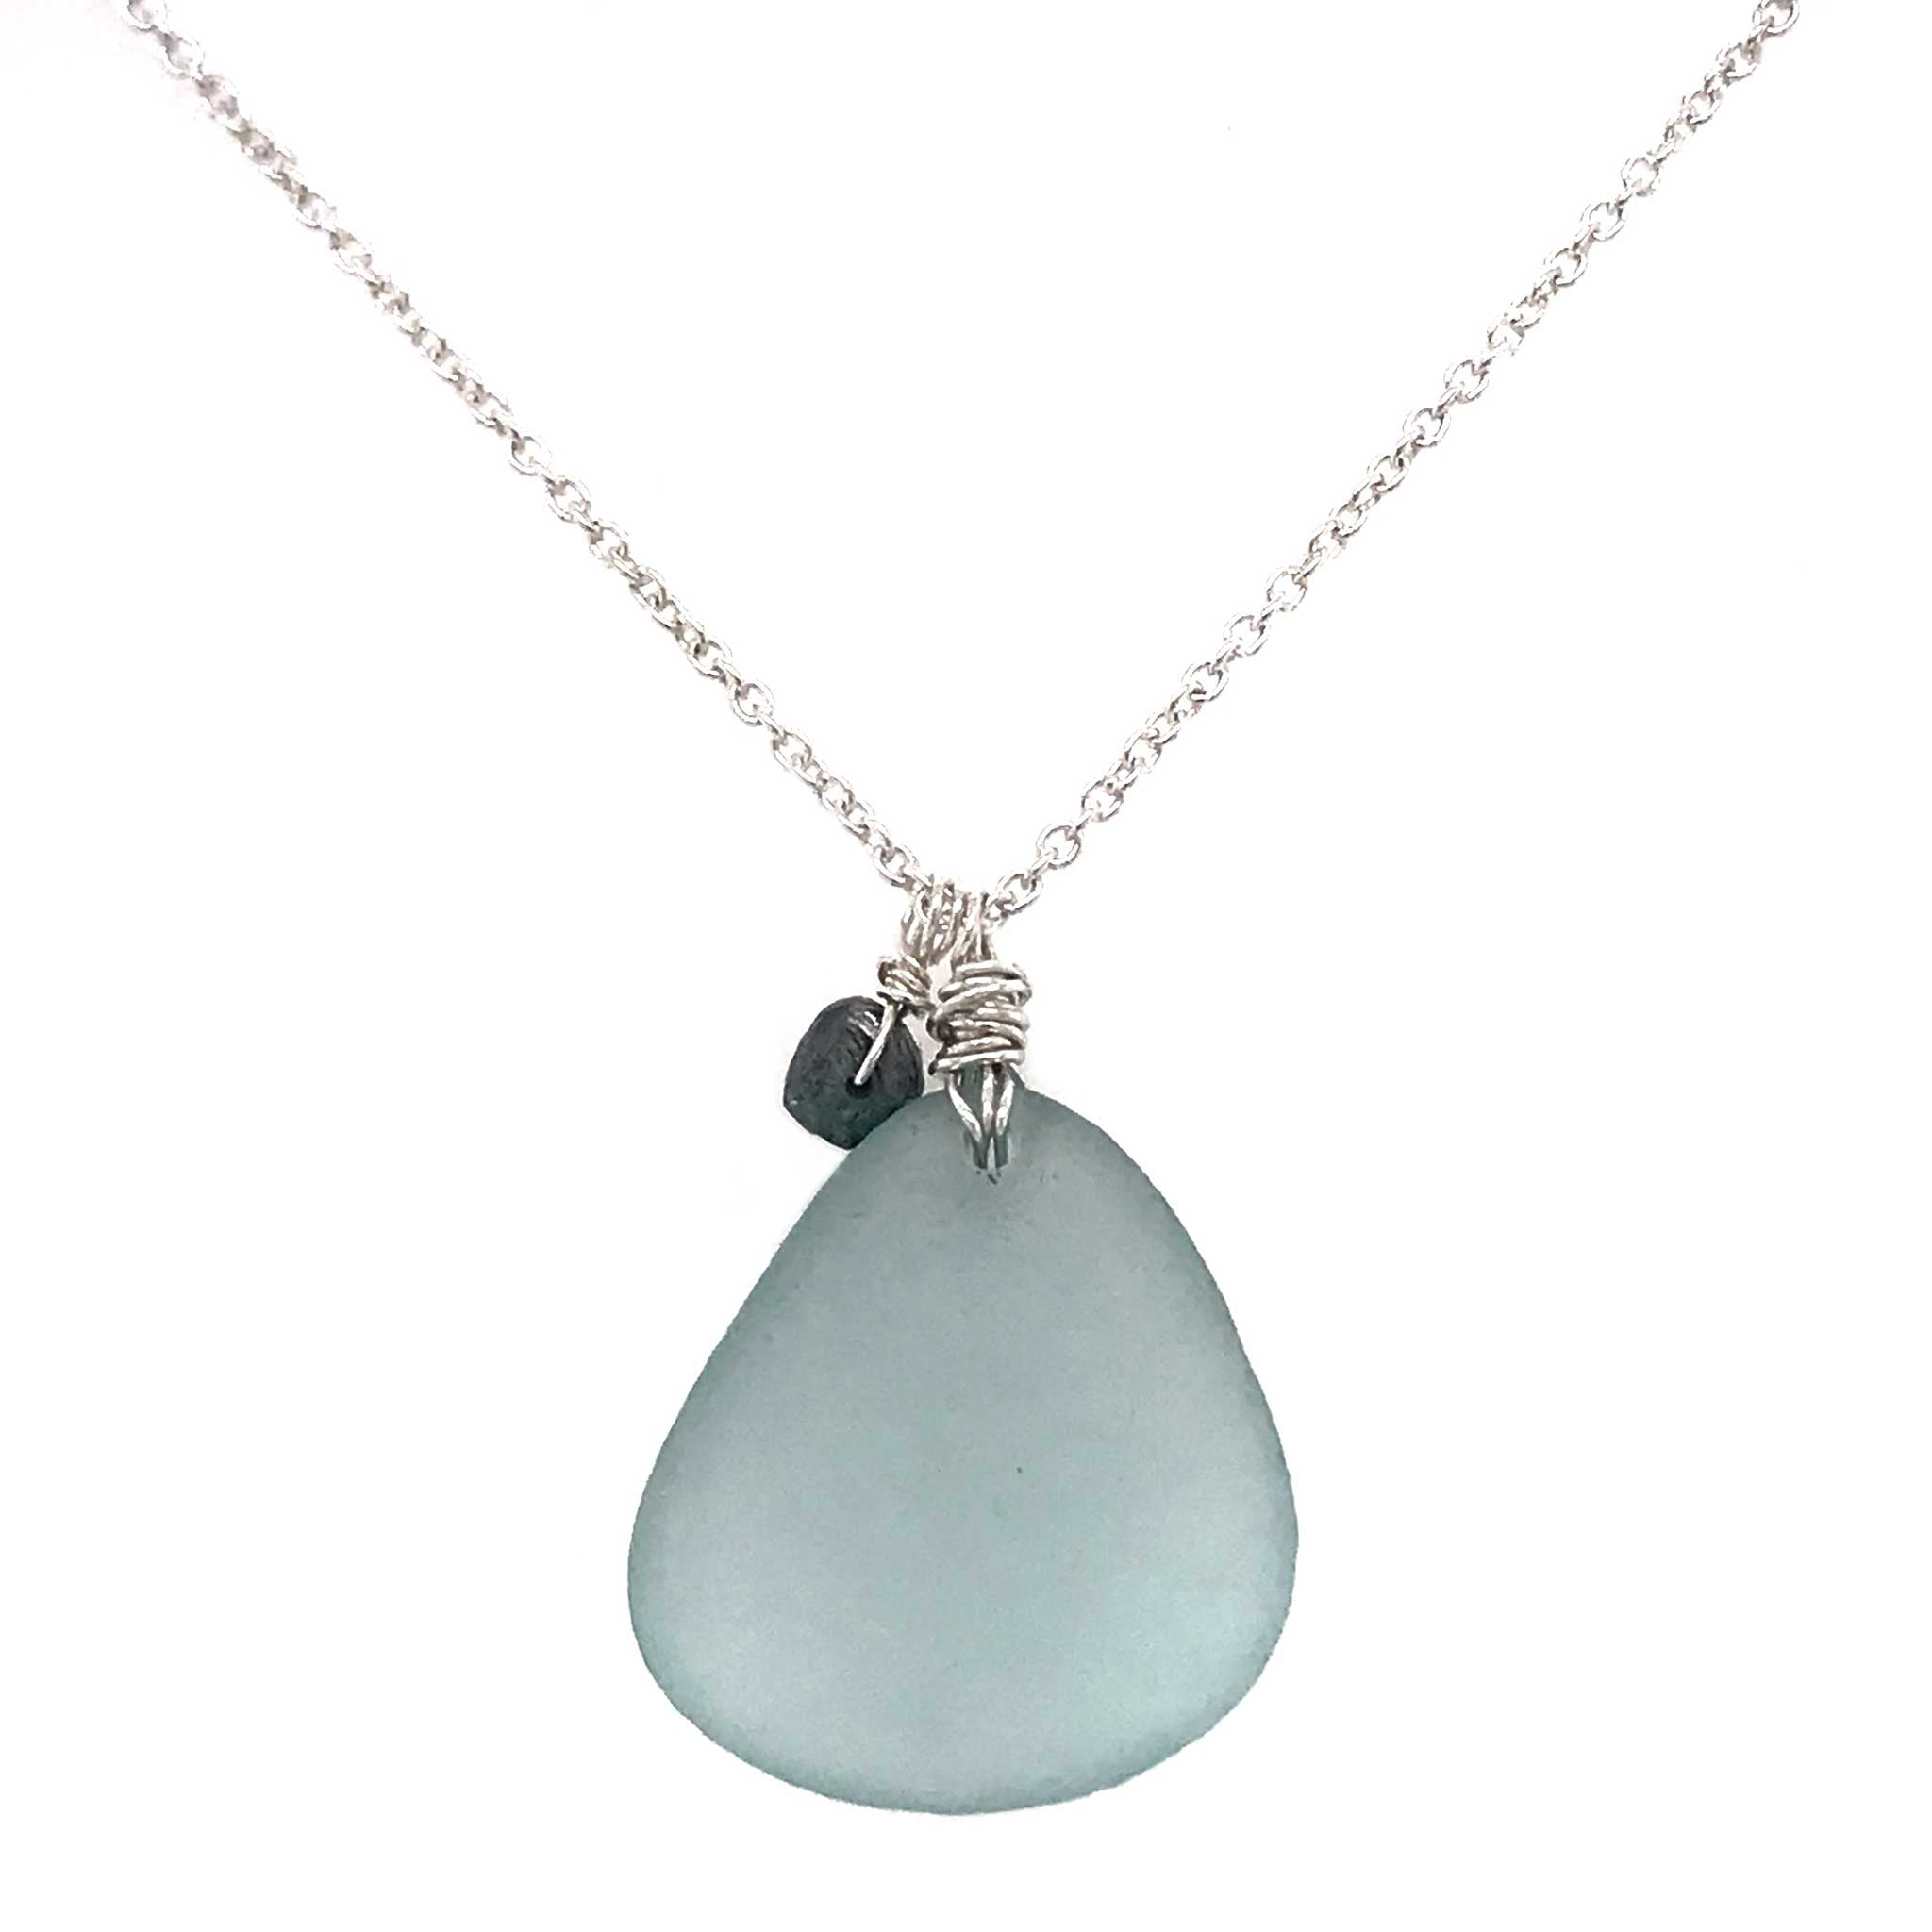 unusual gifts for women grey blue seaglass necklace kriket broadhurst jewellery Sydney